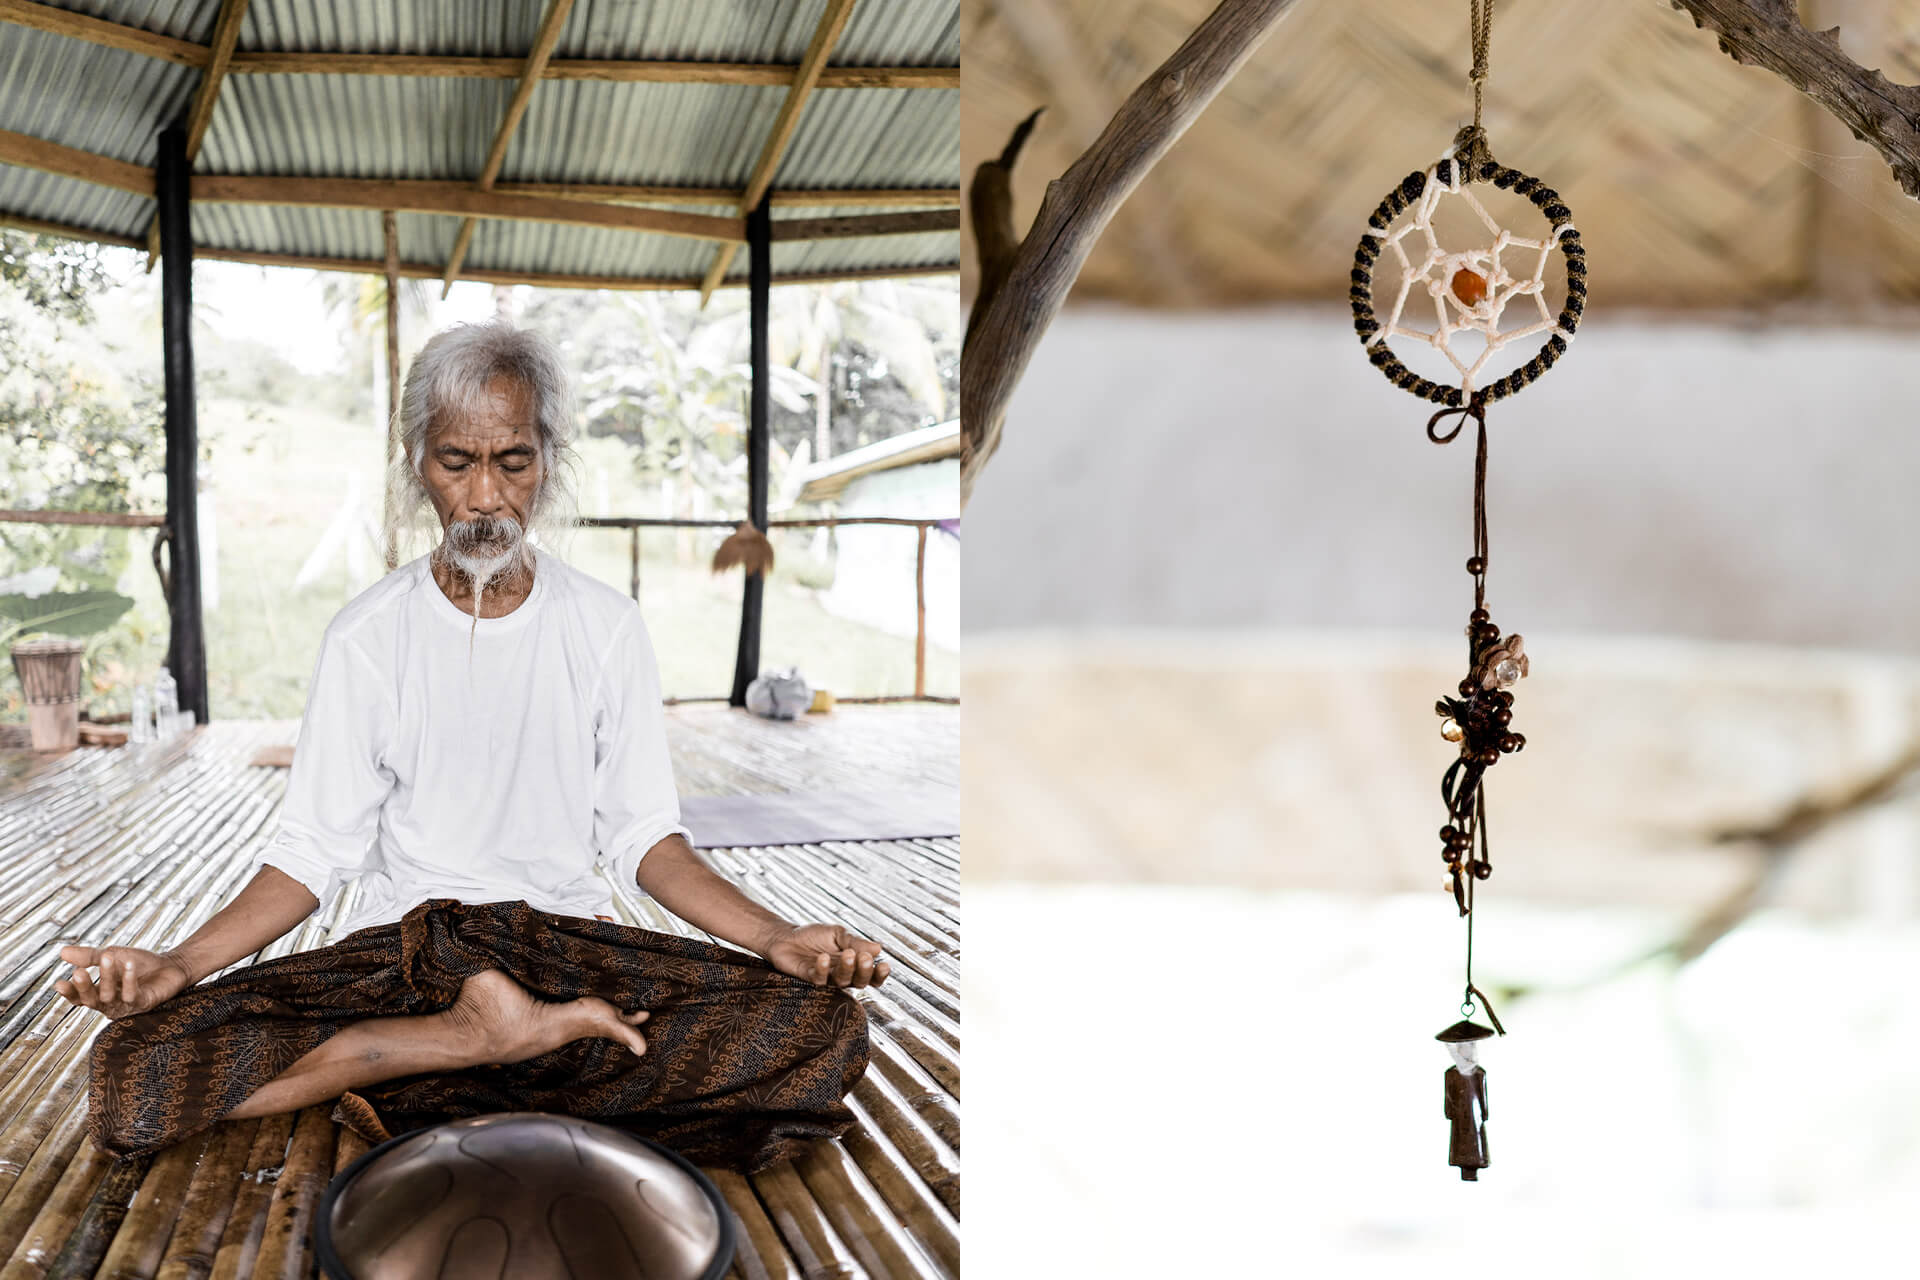 At Bahay Kalipay, people come to meditate, to heal intuitively, and to save the planet through good vibes.